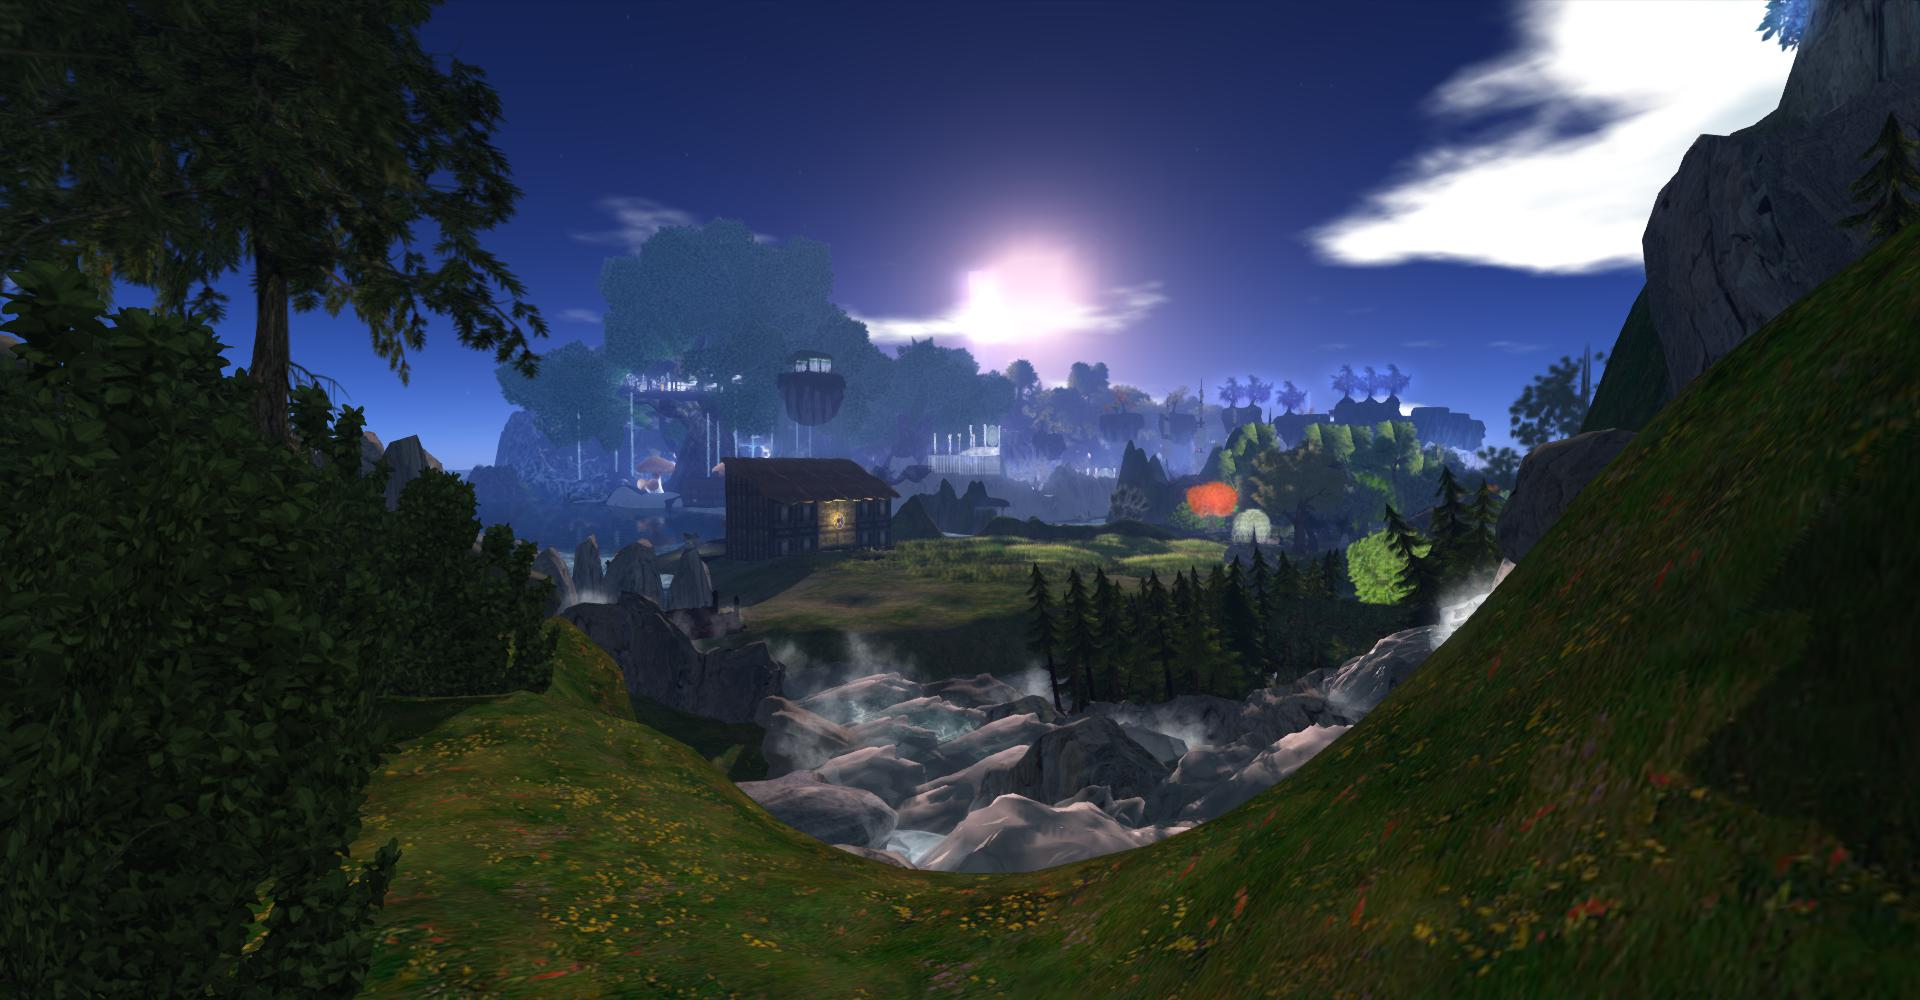 The Realm of Avilion: photograph by Wildstar Beaumont